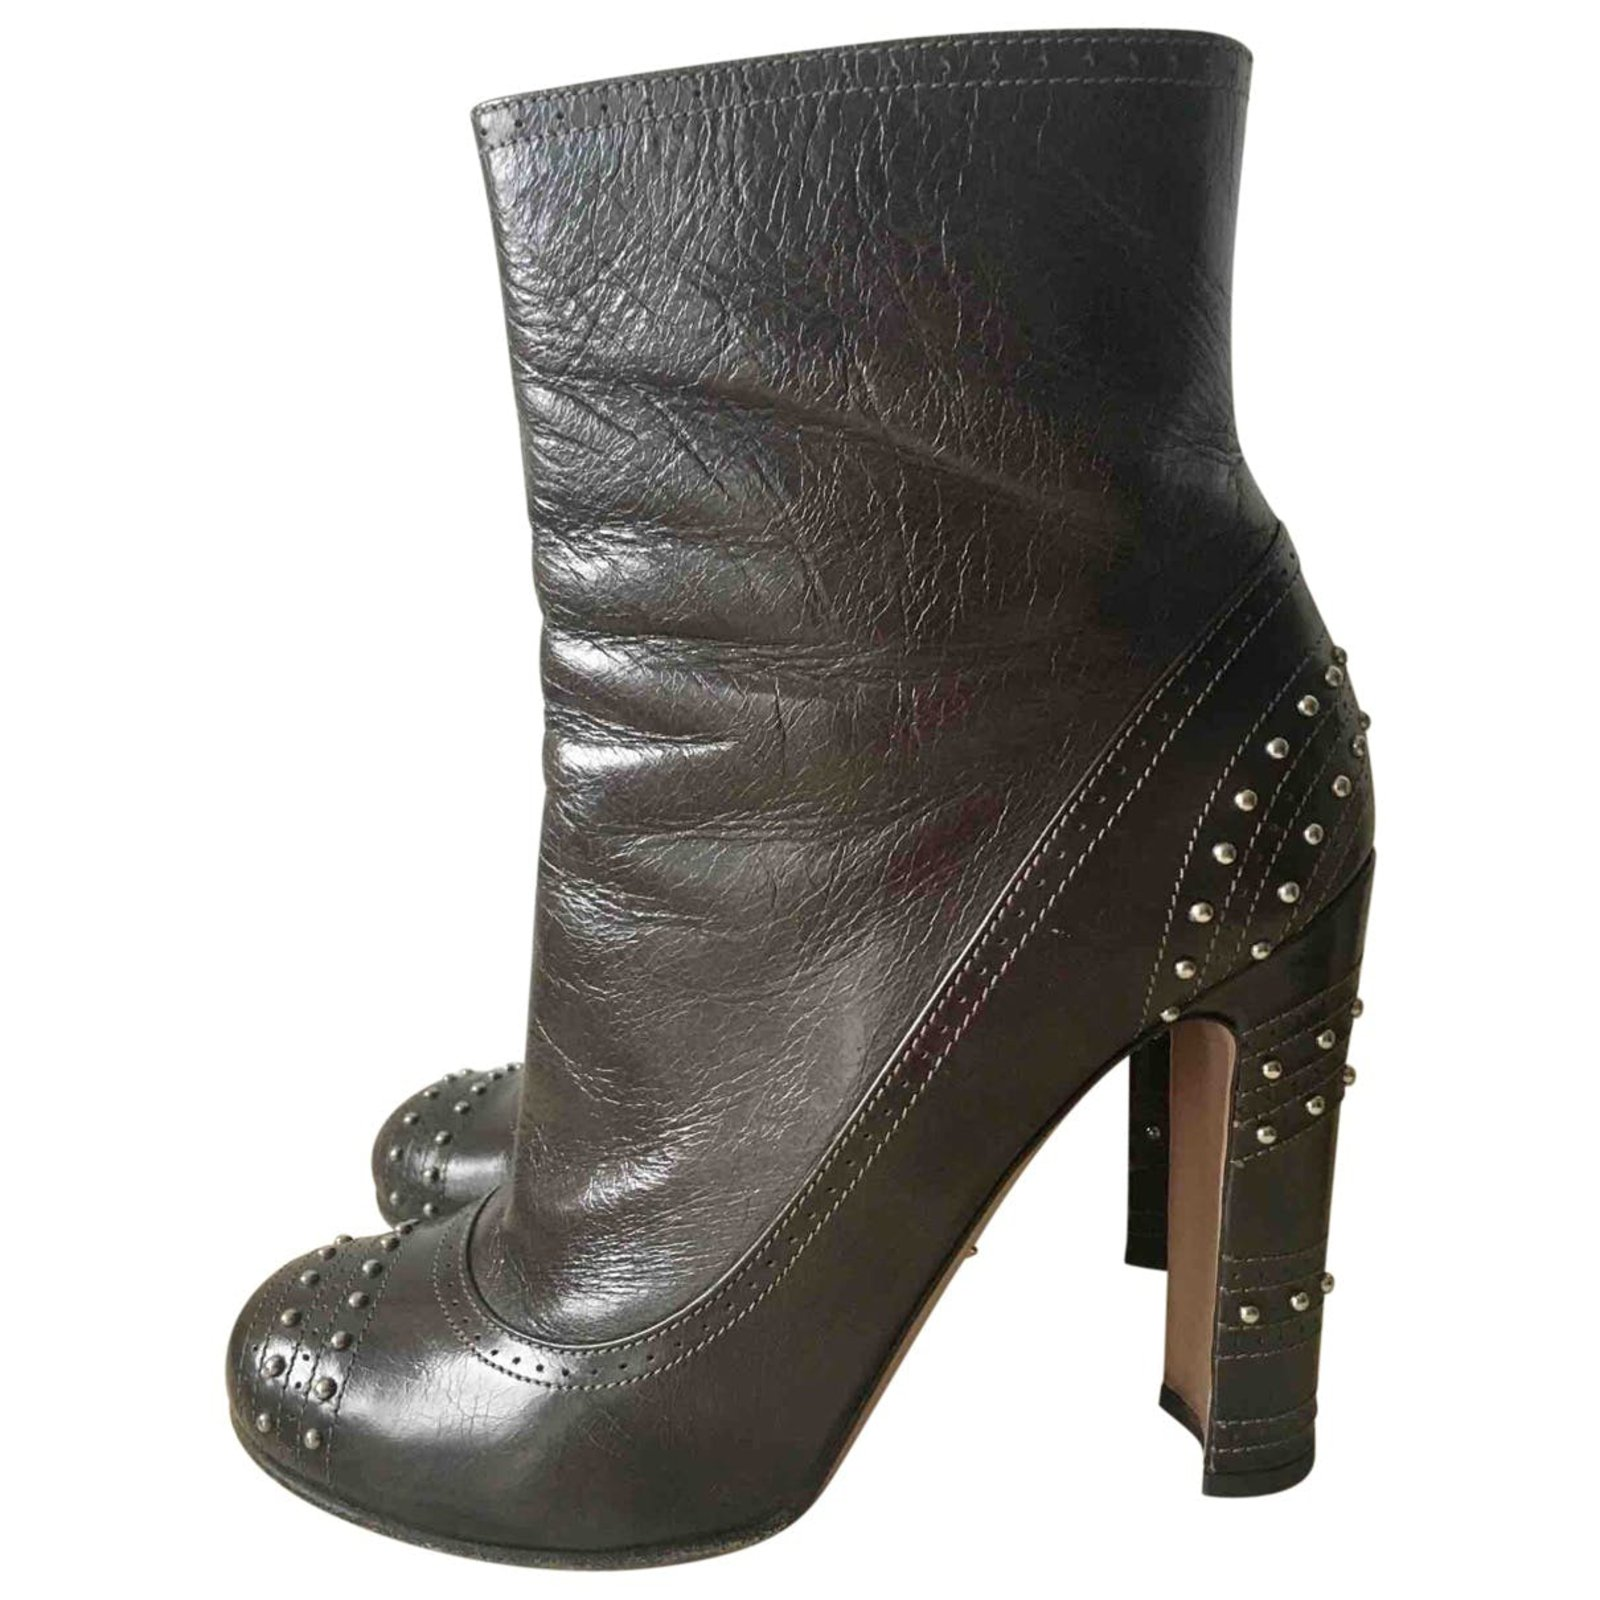 Prada High heels boots Ankle Boots